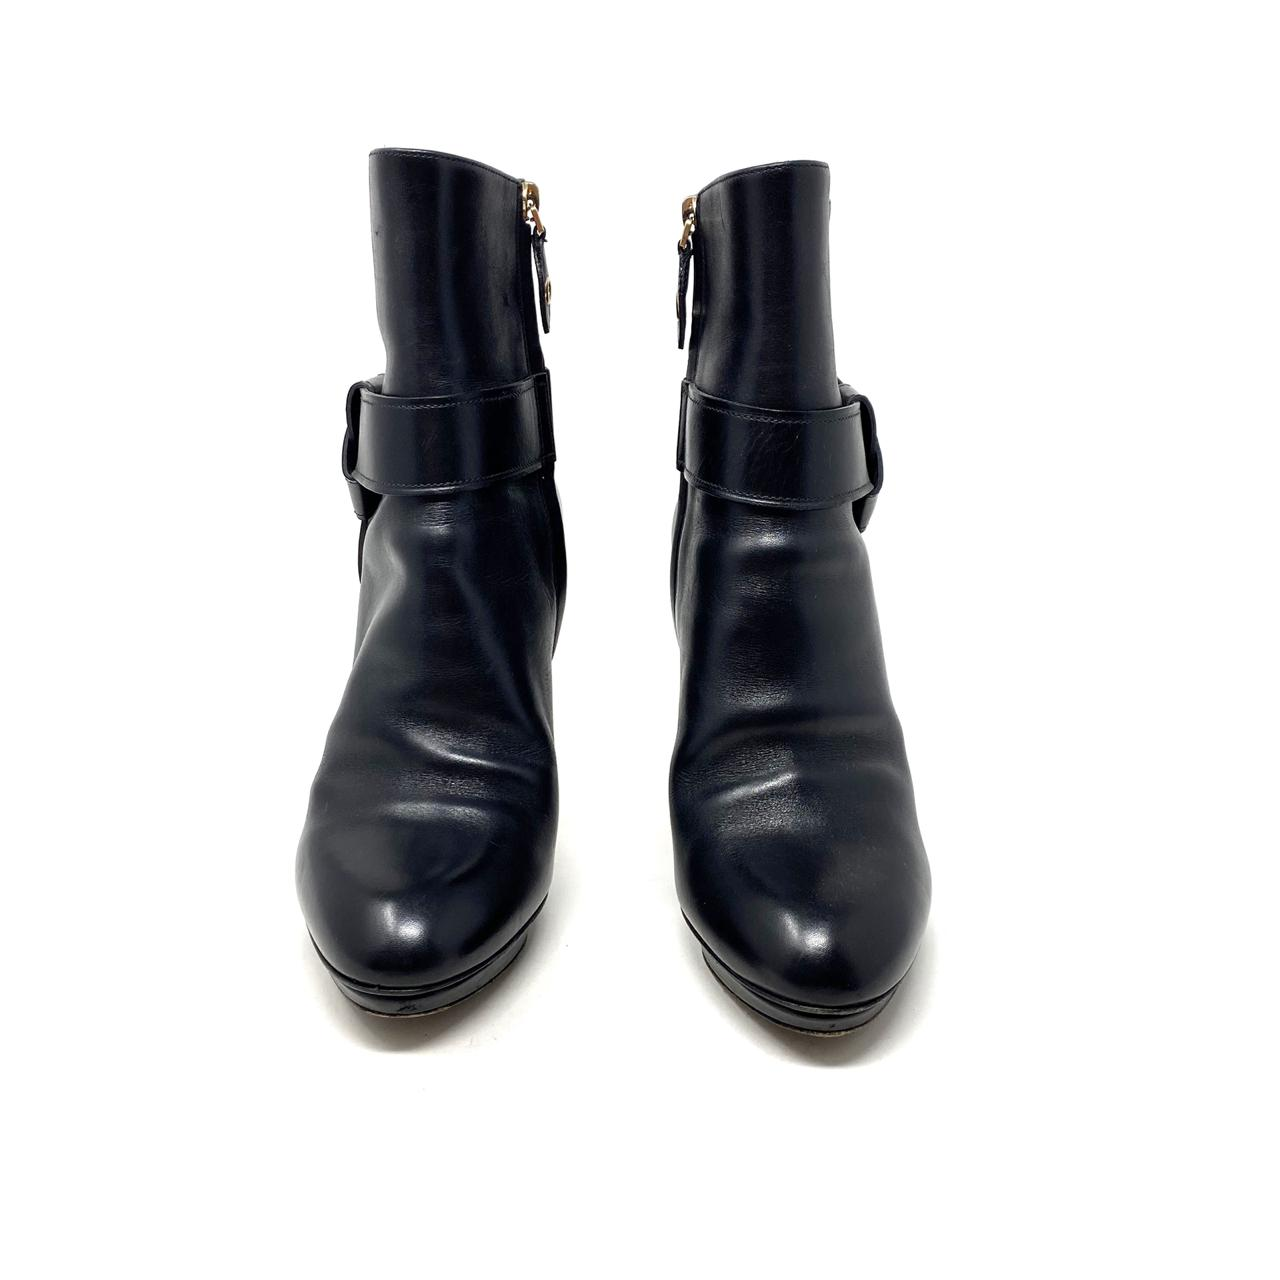 Botas Louis Vuitton T. 37.5